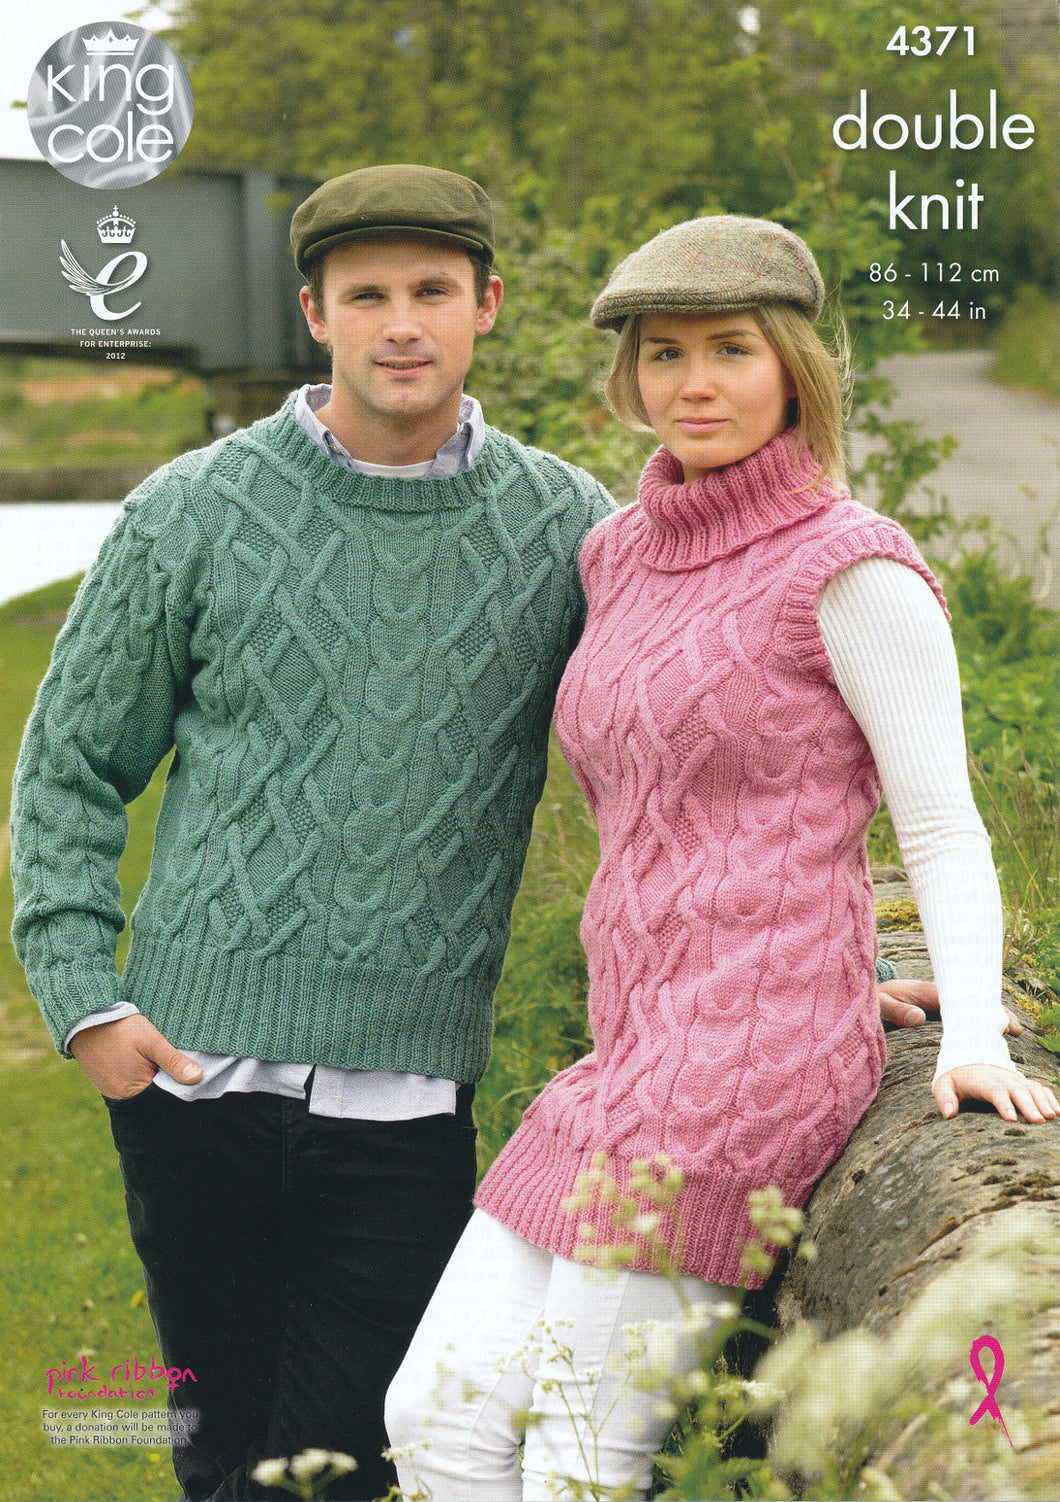 http://images.esellerpro.com/2278/I/119/346/king-cole-merino-dk-double-knit-knitting-pattern-ladies-mens-tunic-sweater-4371.jpg